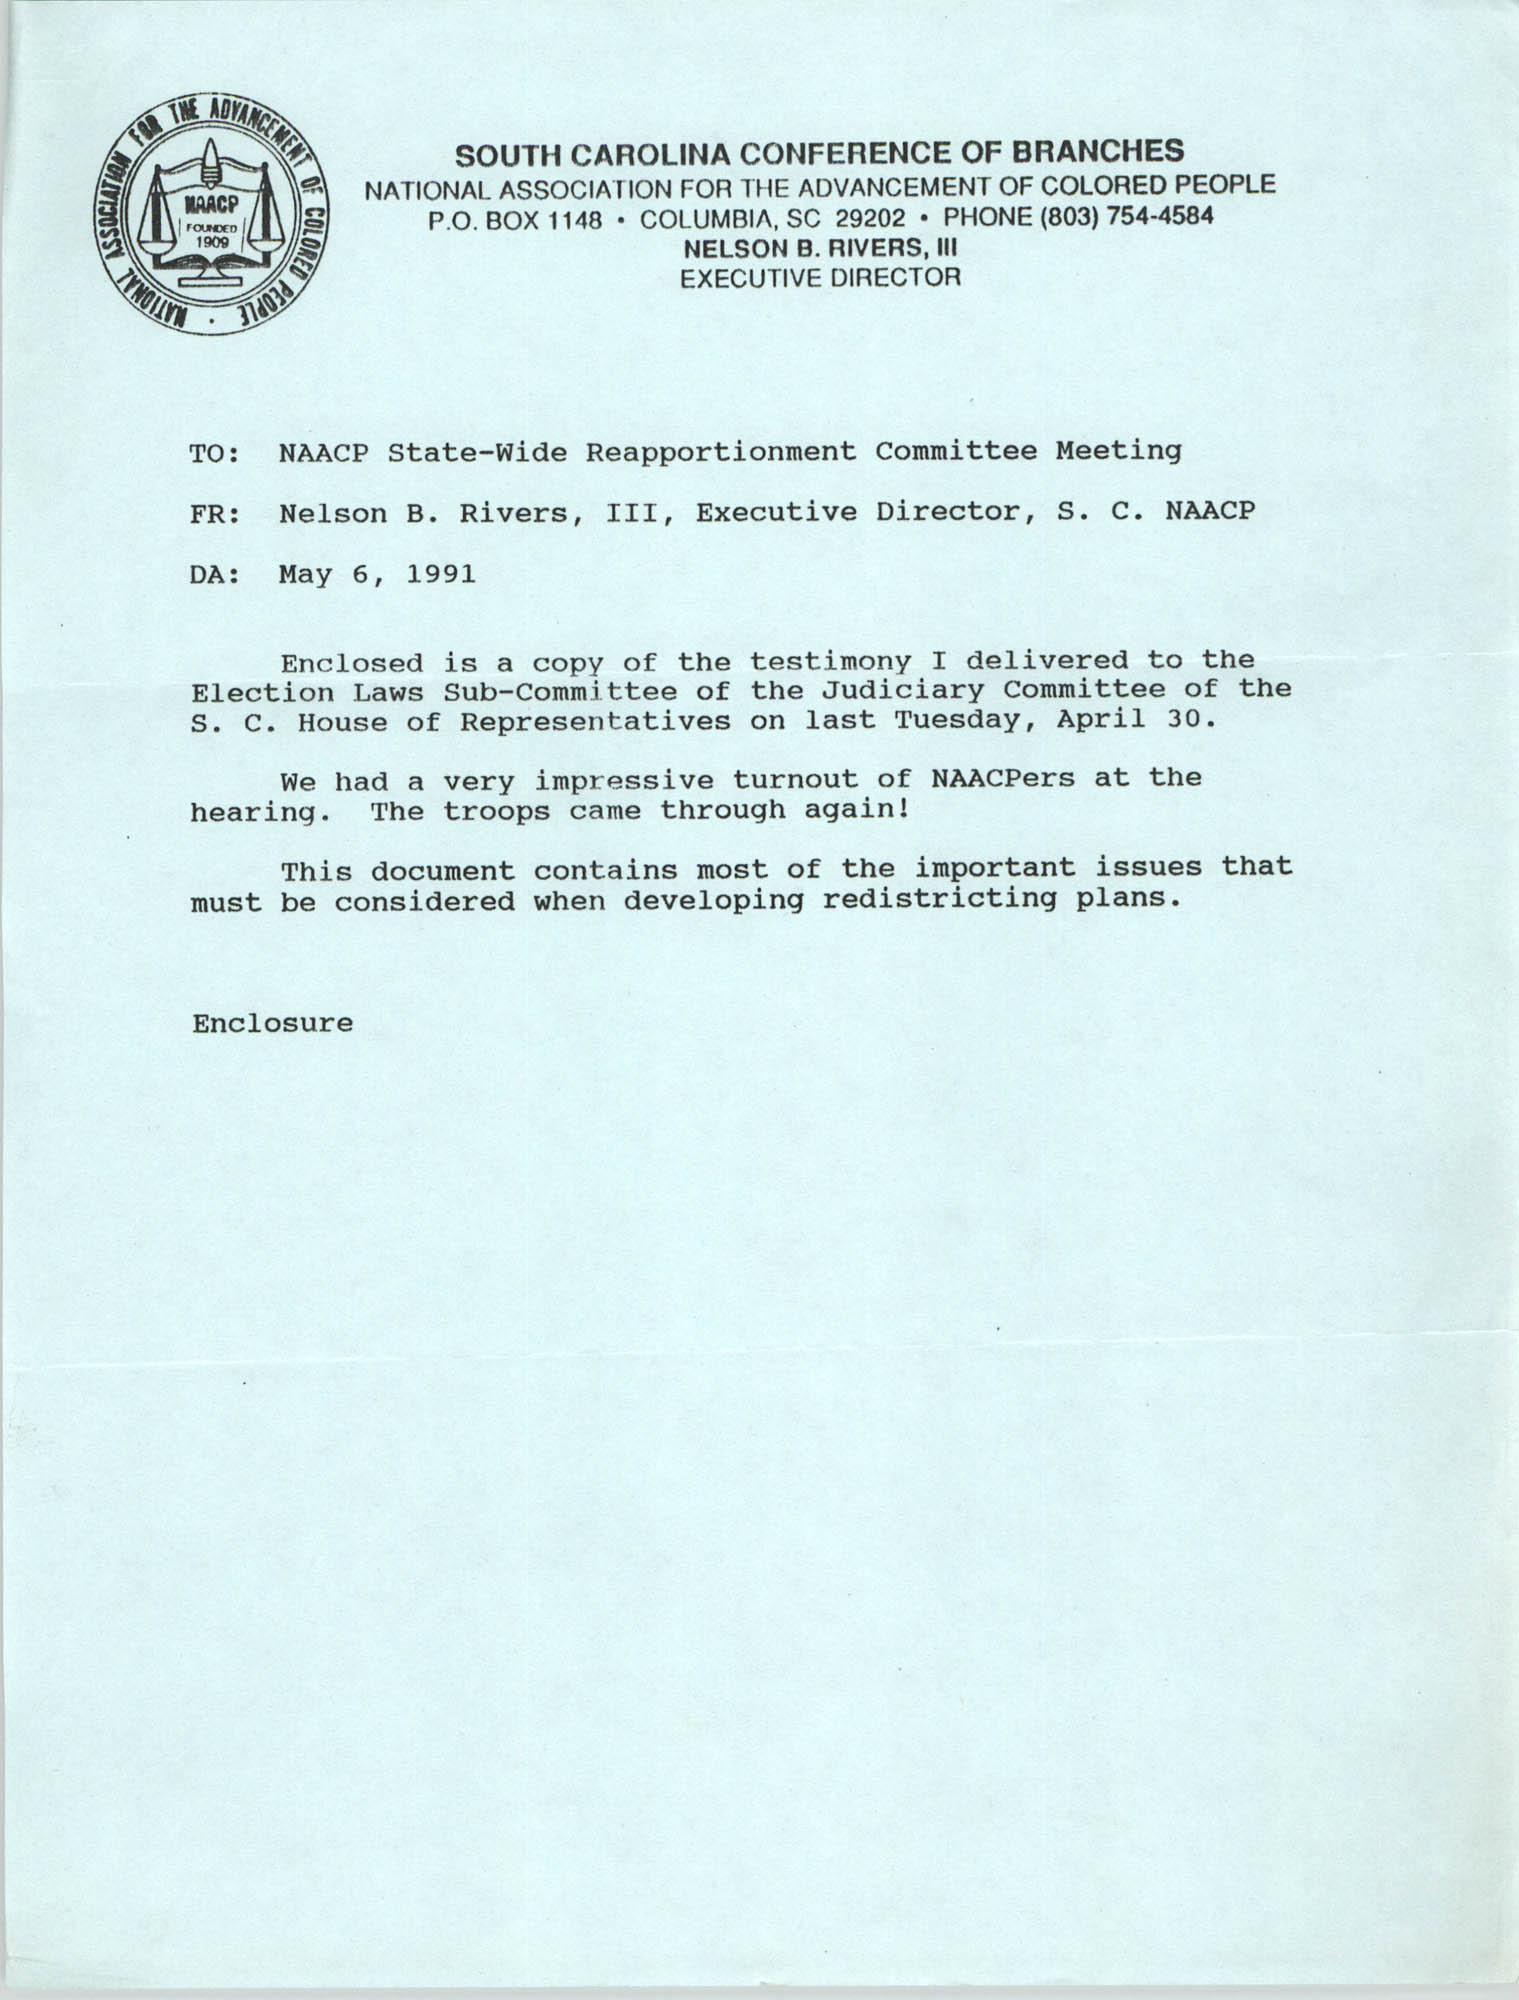 South Carolina Conference of Branches of the NAACP Memorandum, May 6, 1991